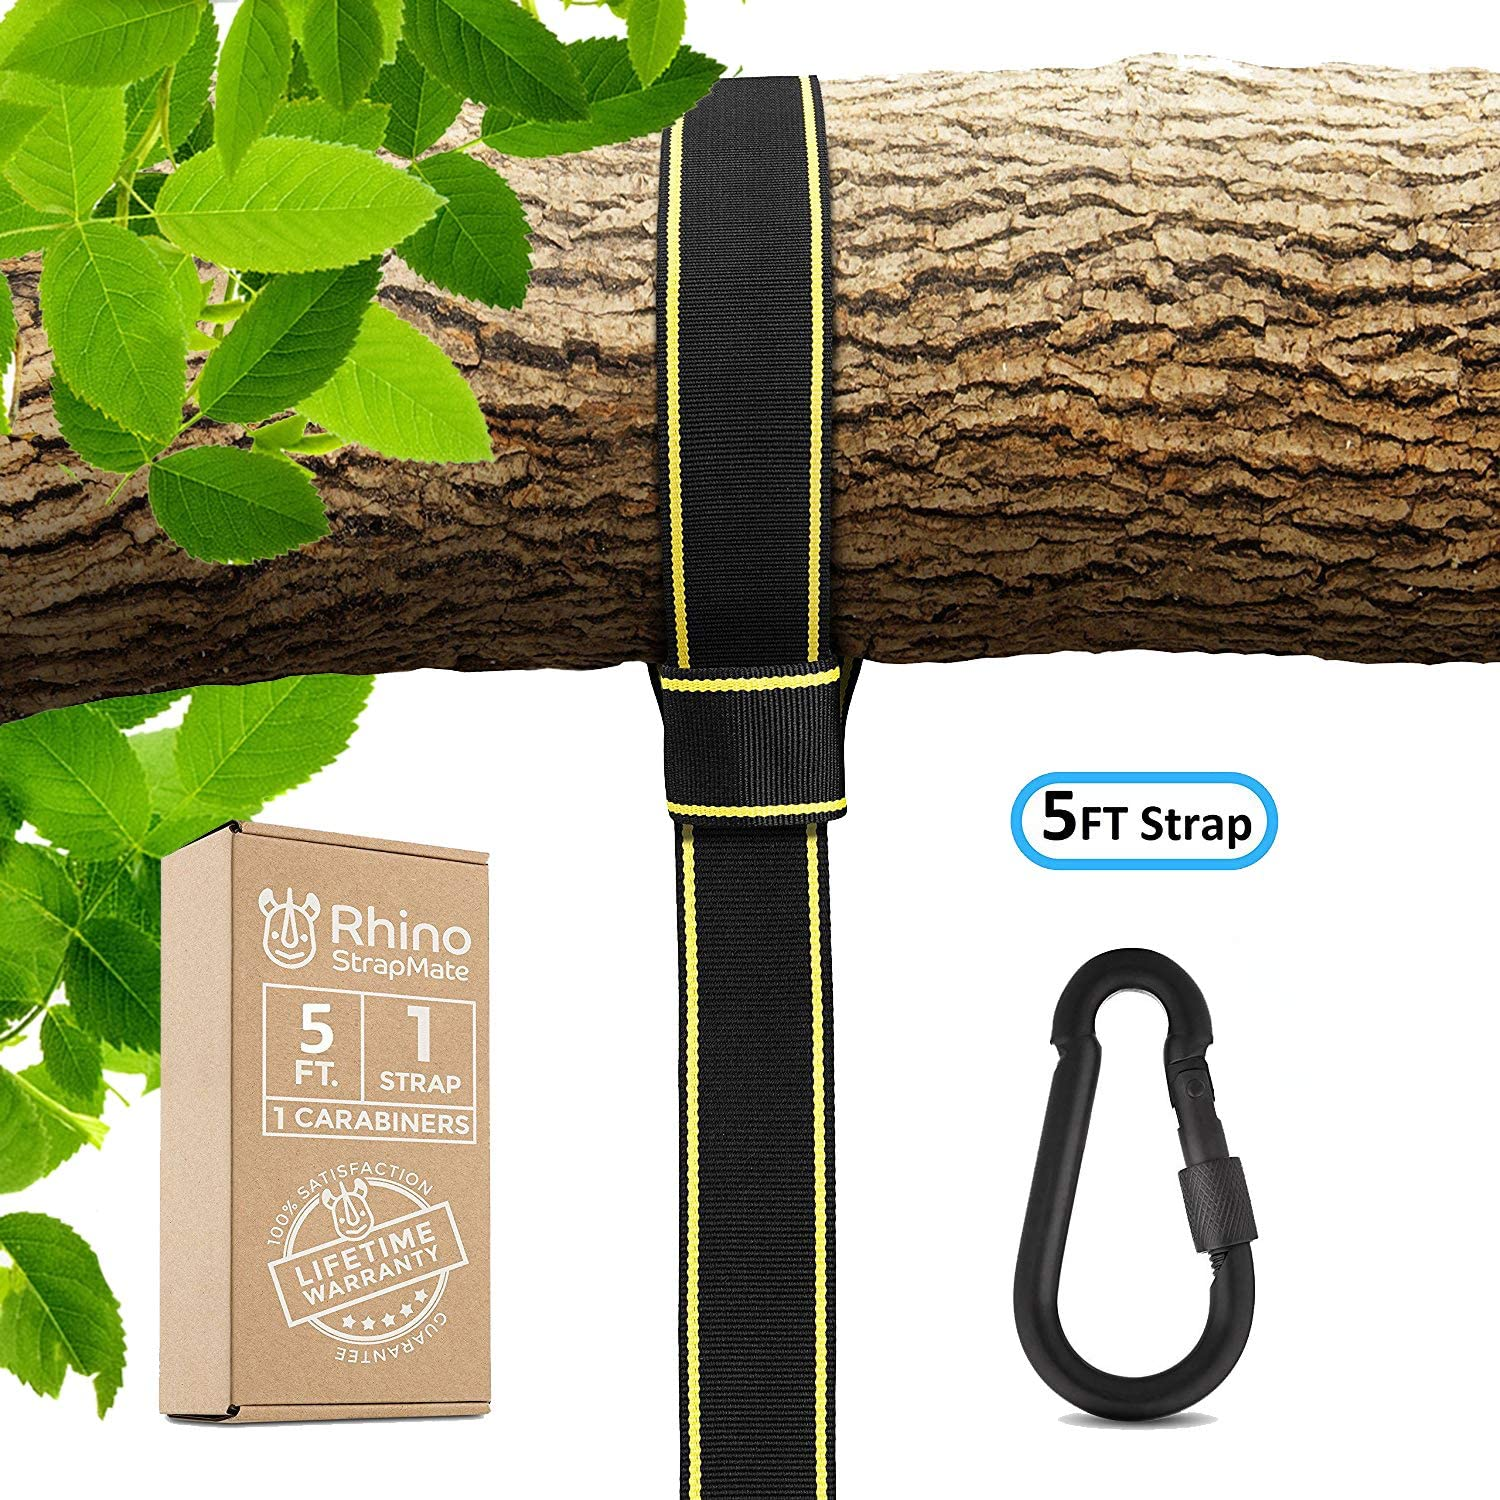 StrapMate Rhino Tree Swing Strap Hanging Kit - 5ft Strap, Holds 2800 lbs (SGS Certified), Fast & Easy Way to Hang Any Swing